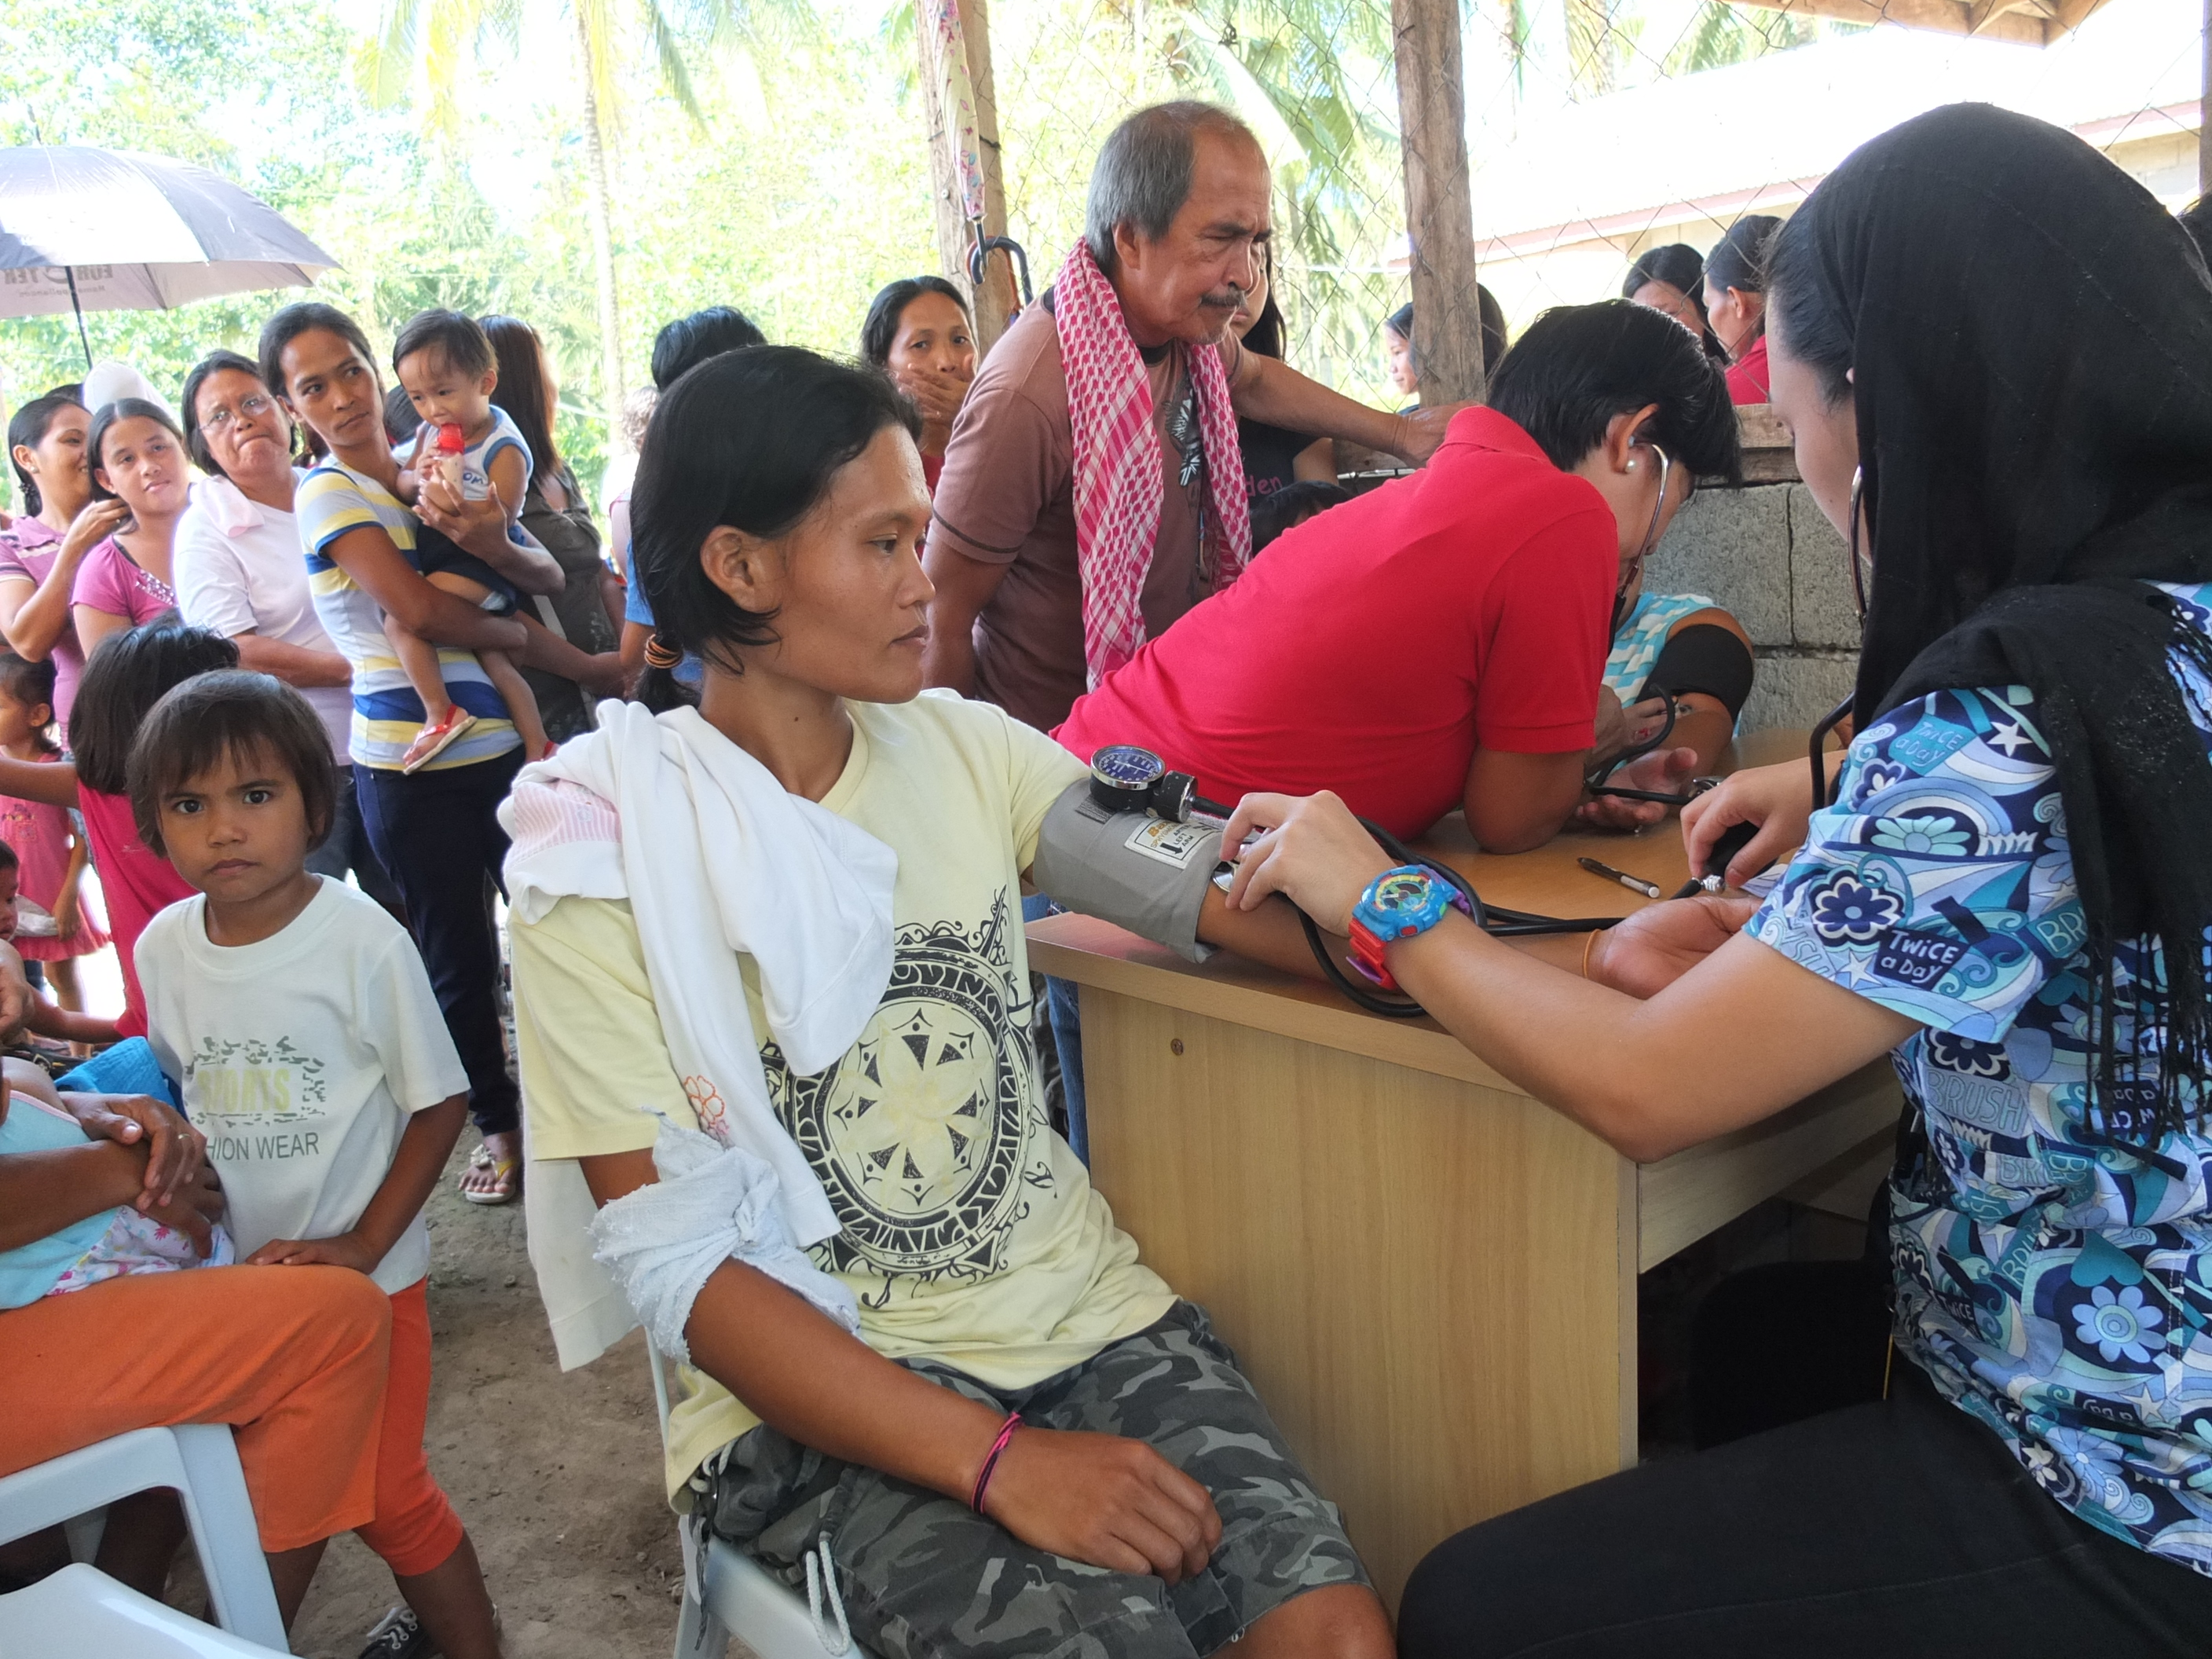 Among KCGP�s objectives is to deliver free health and medical care and services to financially constrained community members of Pantukan and provide medicine to those diagnosed with ailments, including immunization of infants and small children to safeguard them against diseases.